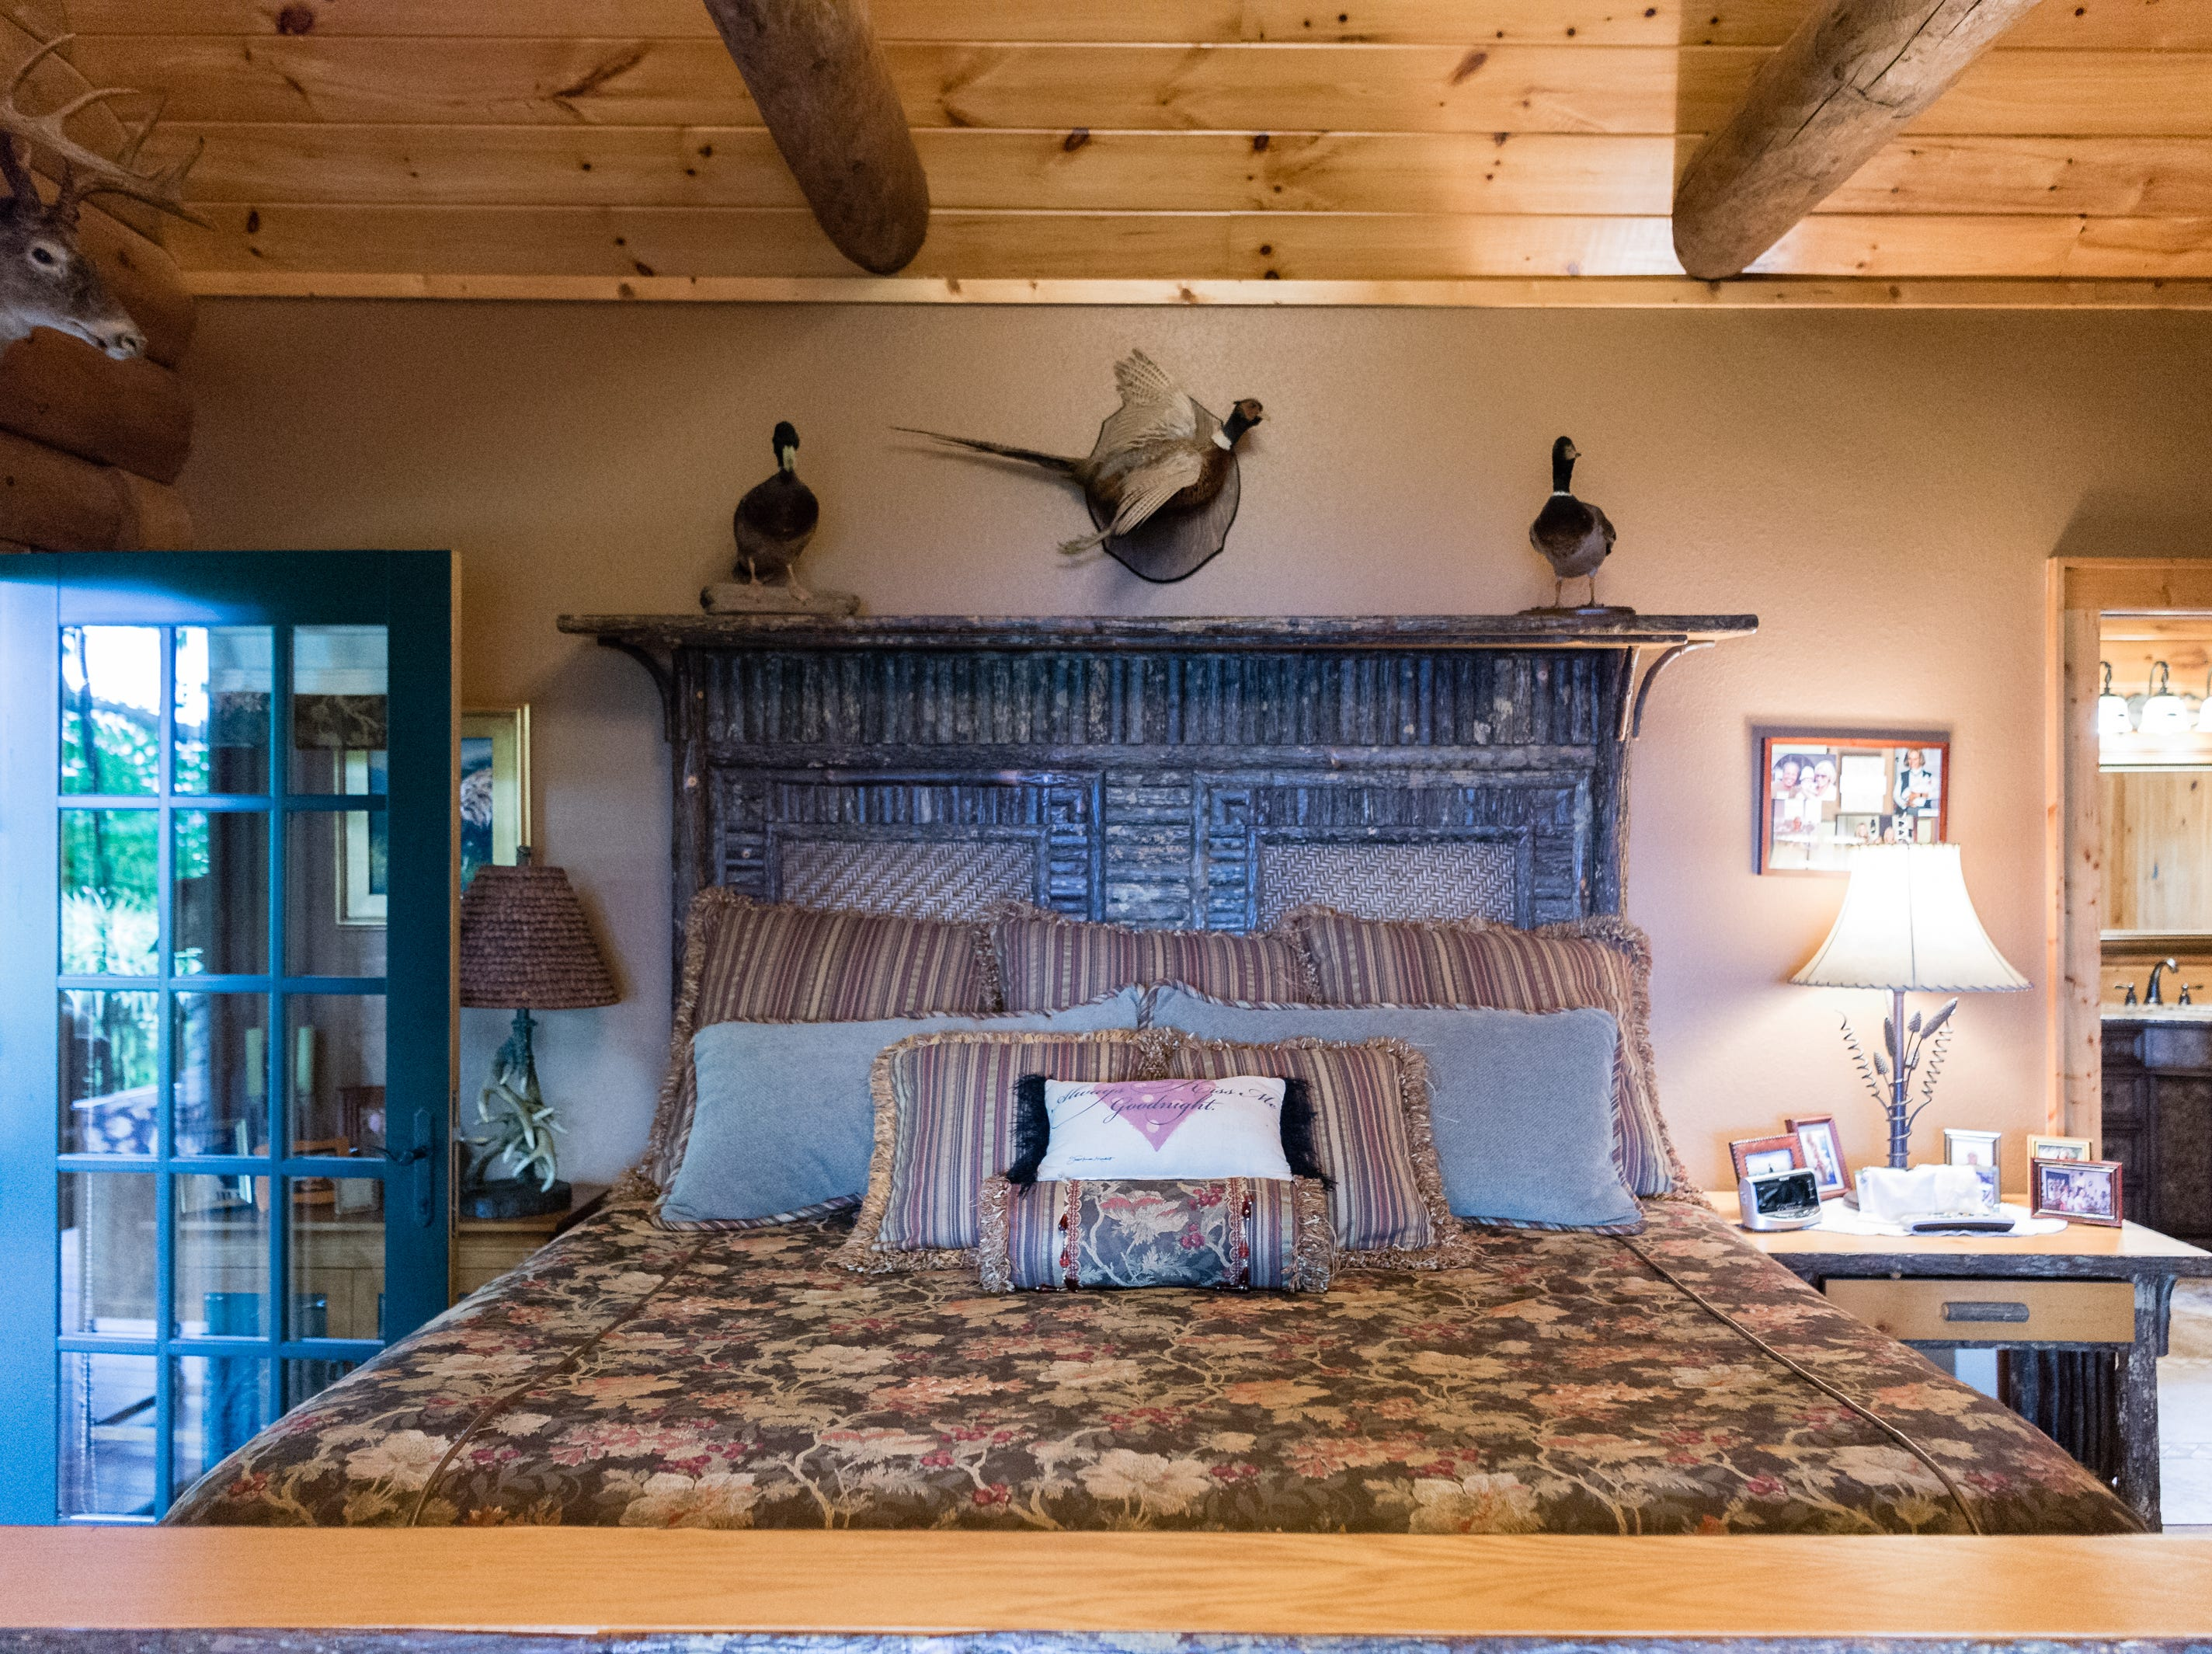 The master bedroom in the home of Dan and Belle Fangmeyer's log cabin in Waynesville.